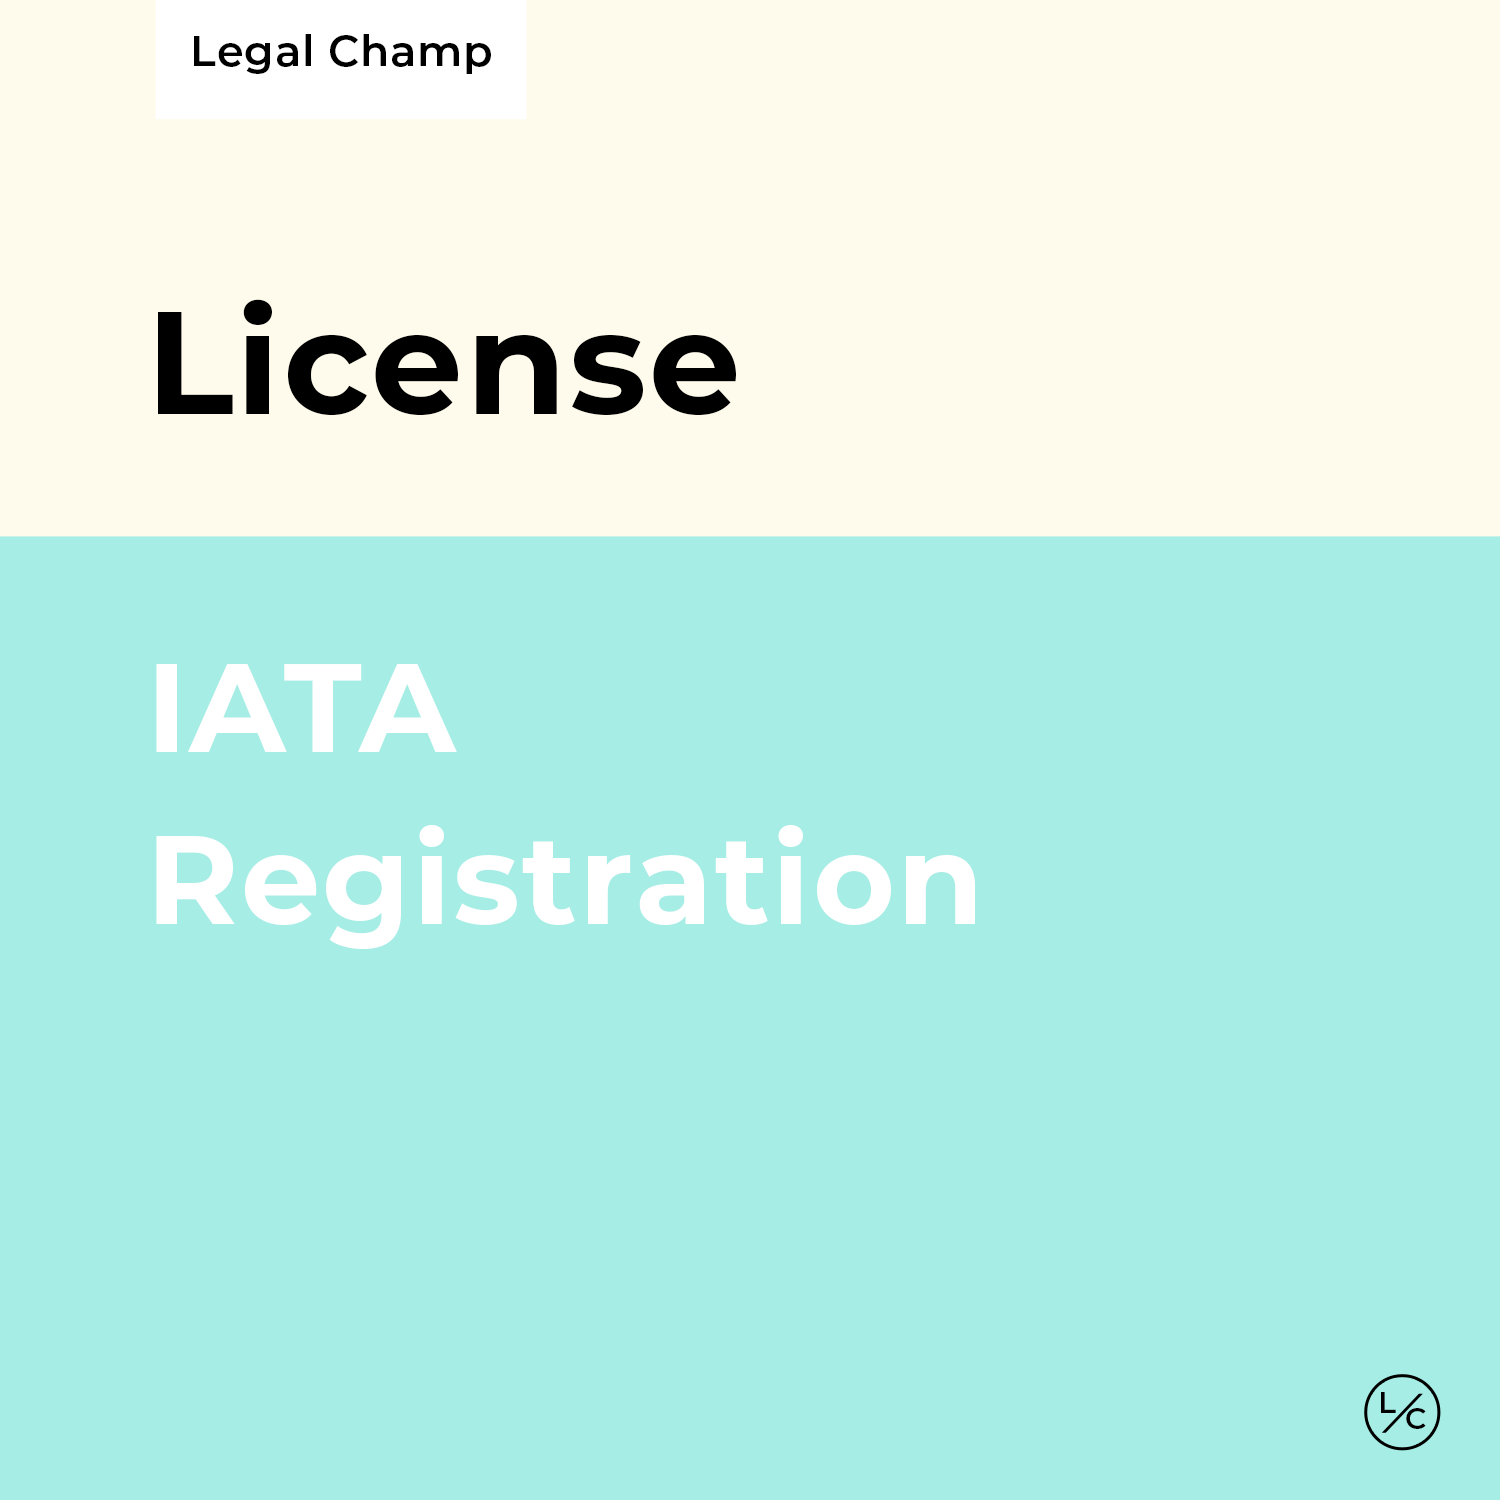 IATA Registration